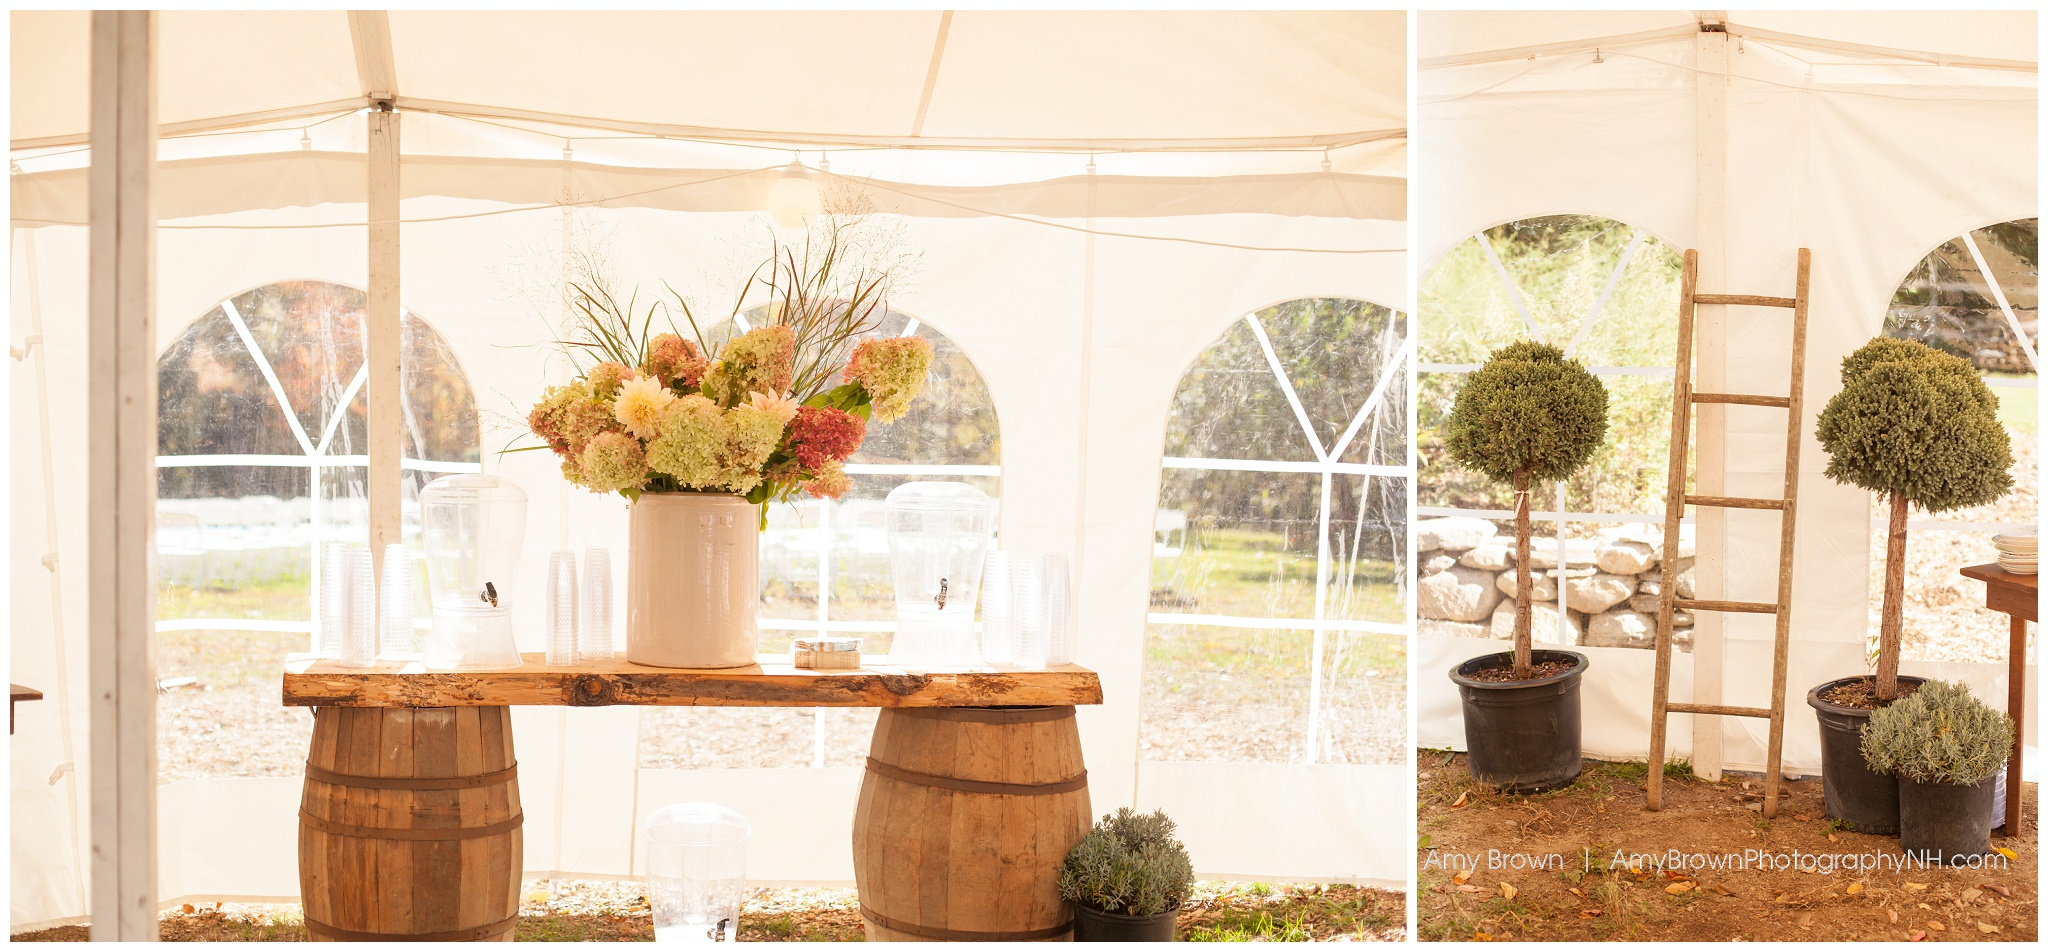 Rye Nh Wedding Photographer | Rye Farm Wedding | Whiskey Barrel Decor | Amy Brown Photography